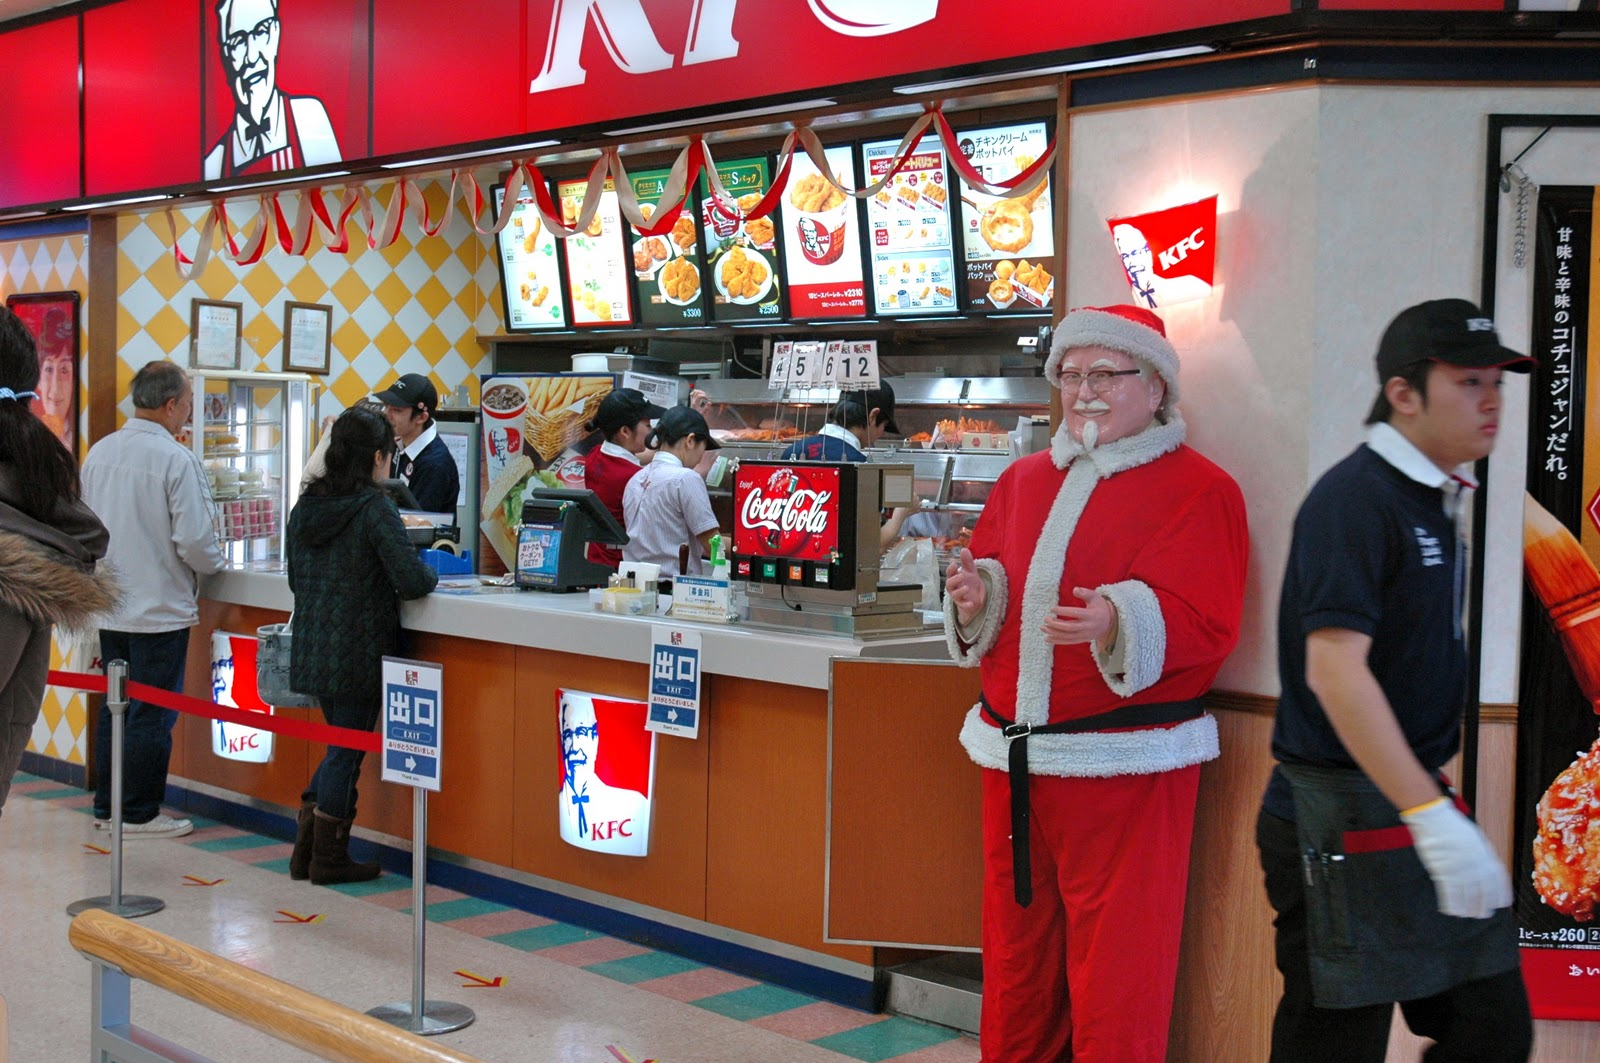 Fried chicken filled Christmas at Japan